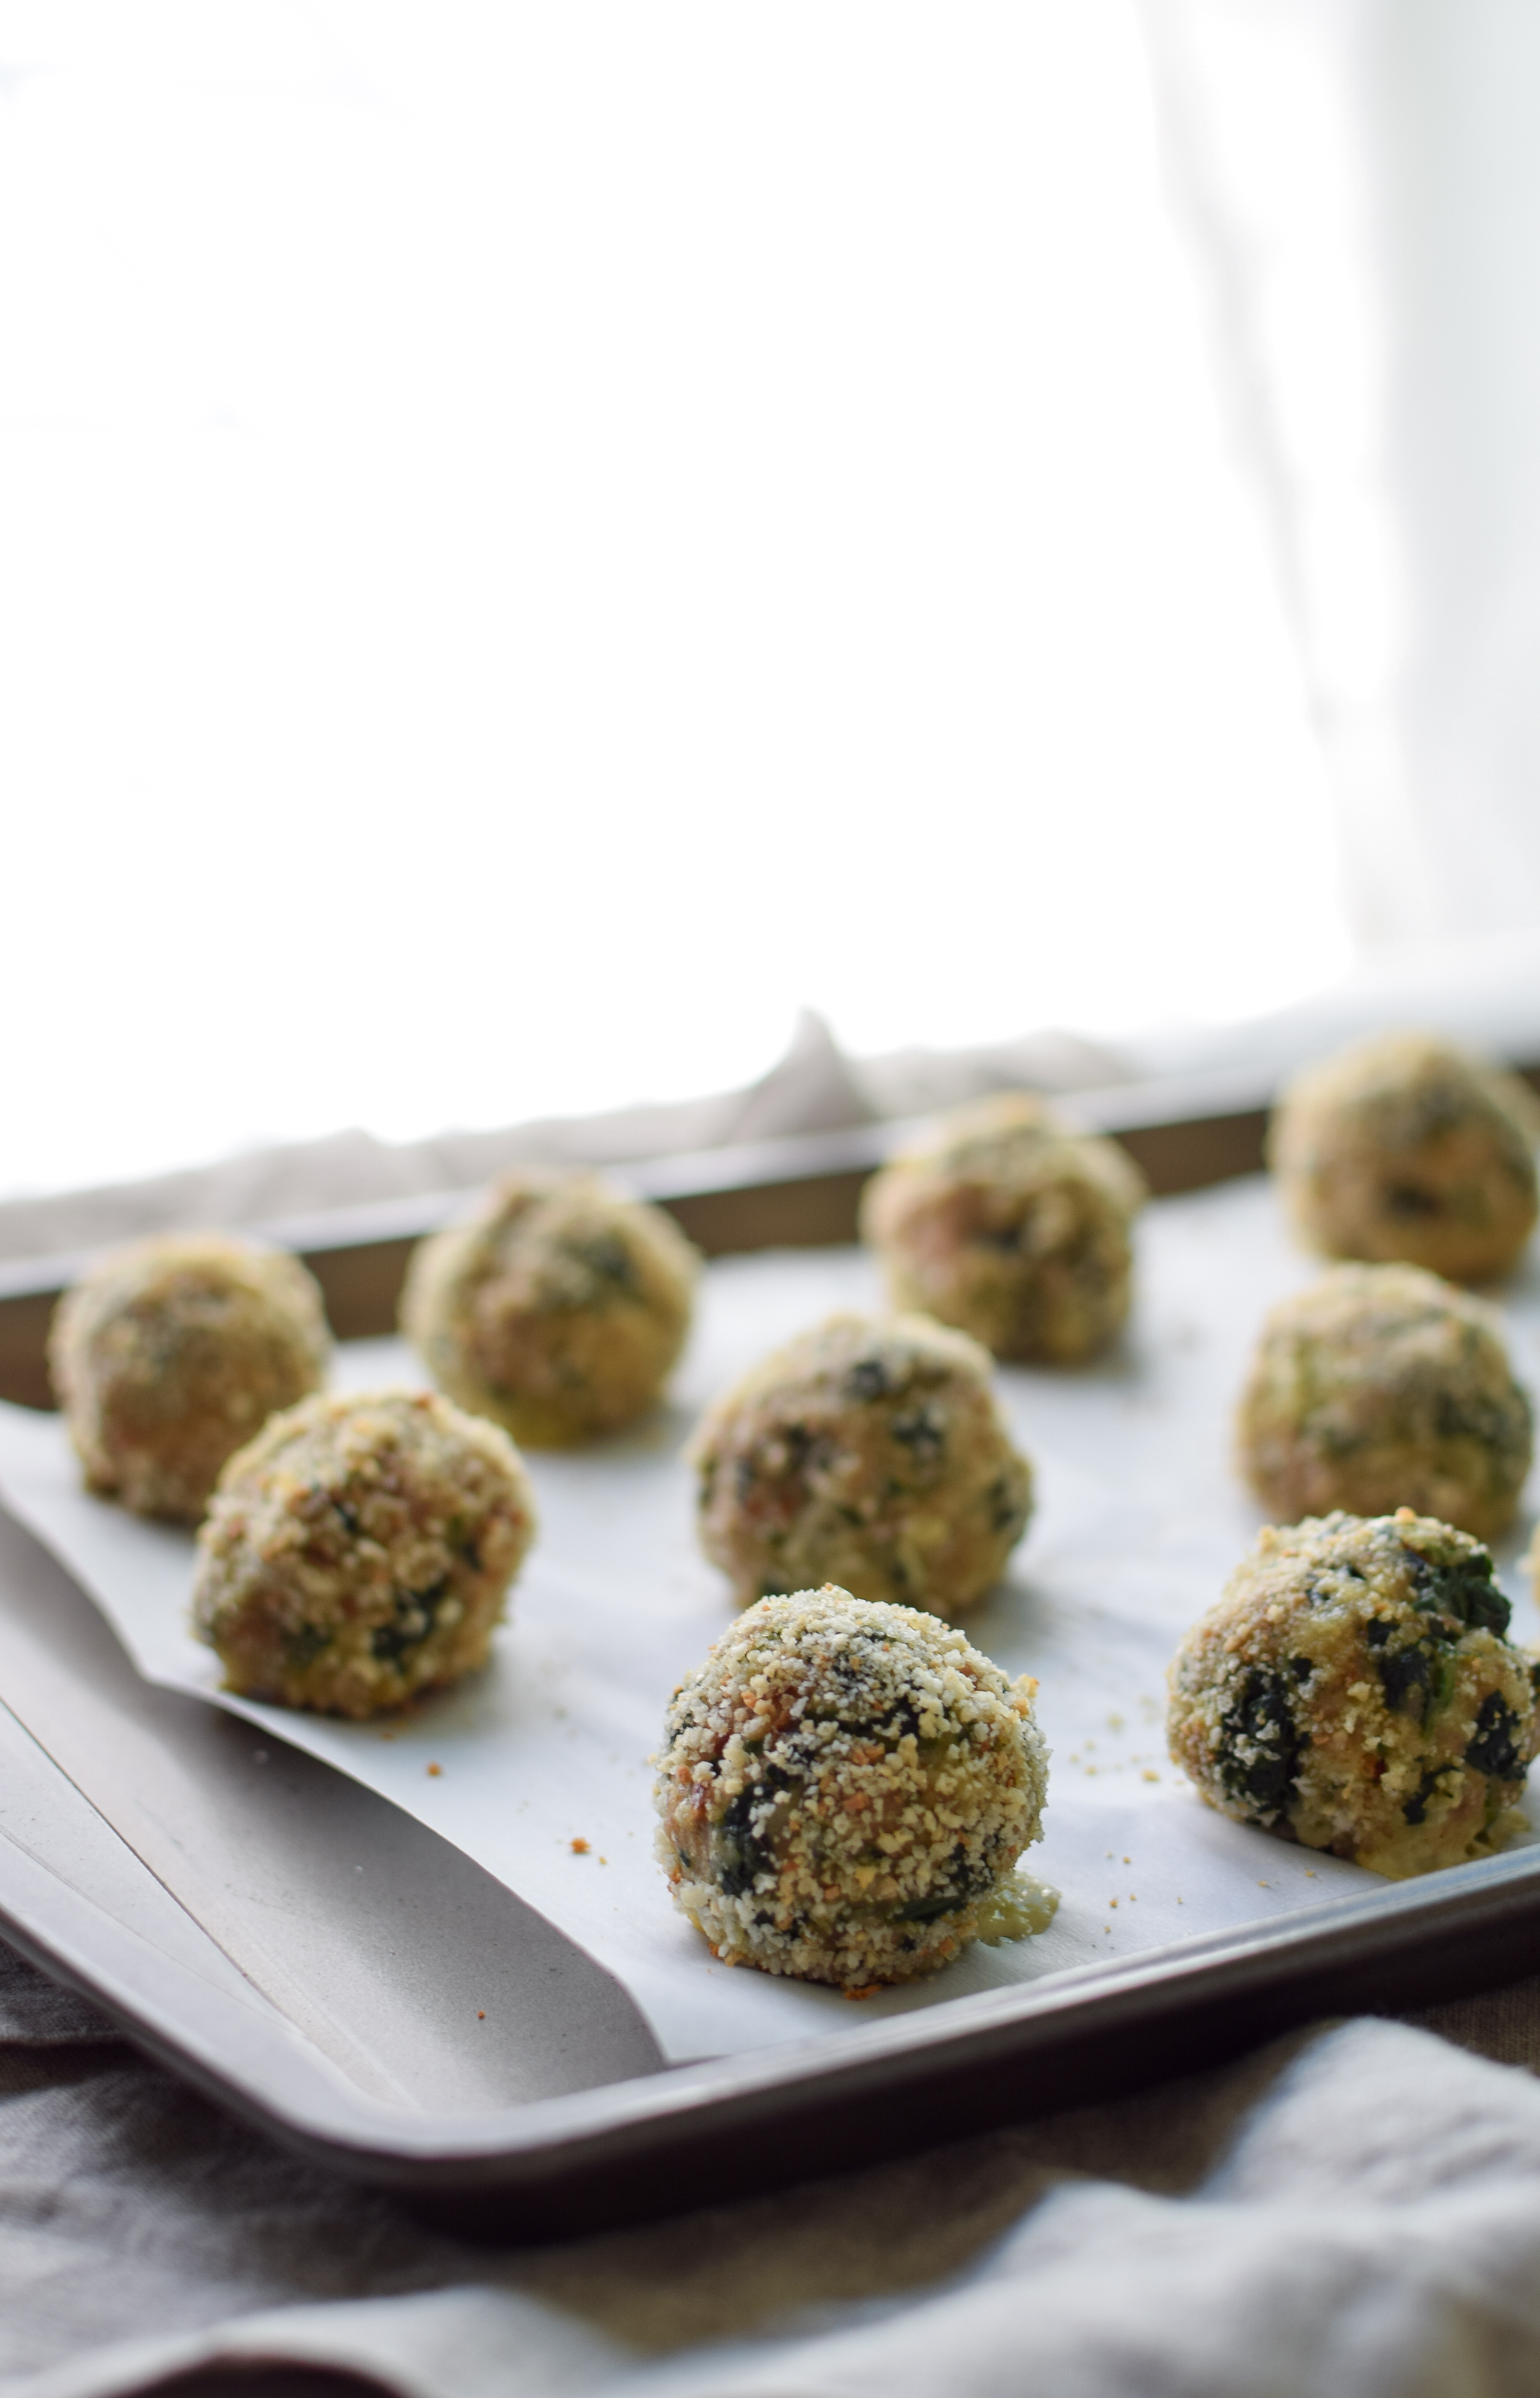 Spicy Baked Turkey Spinach Meatballs recipe - Ground turkey + spinach +all the right spices and a little heat make the best meatballs ever! - ProjectMealPlan.com